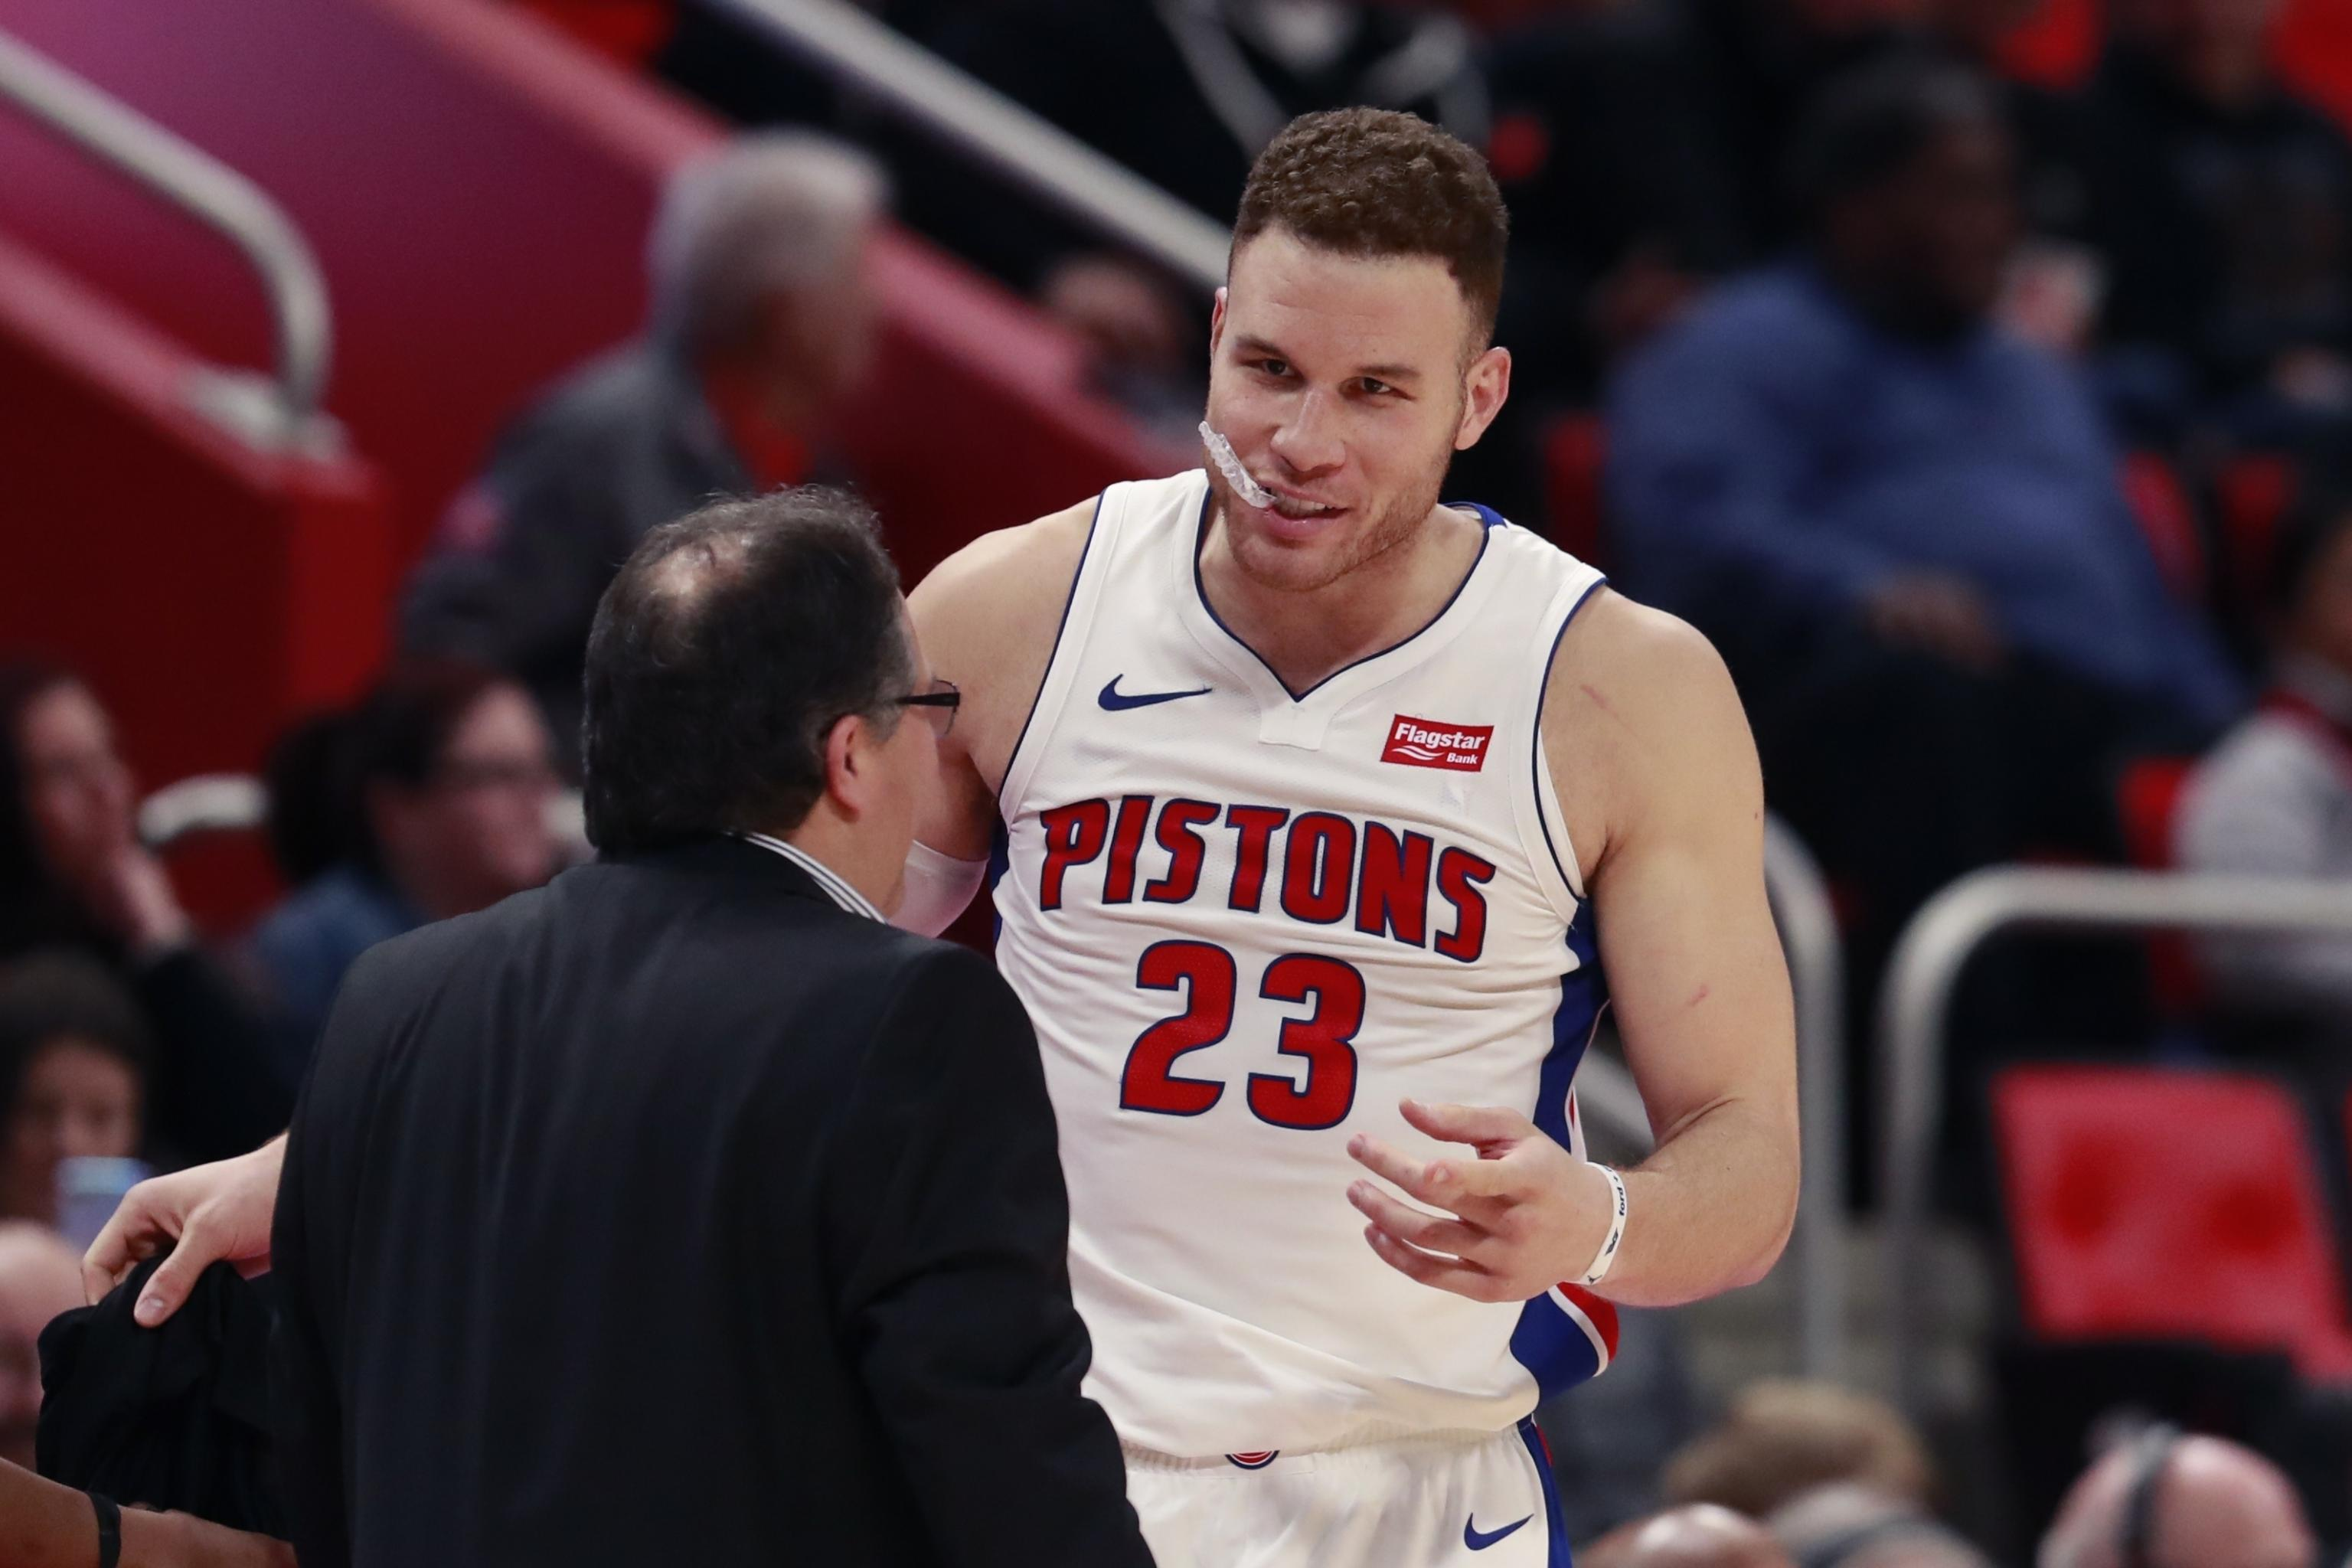 reputable site 75a49 e6a6f Blake Griffin Rips Clippers: Pistons Made Me Realize What a ...